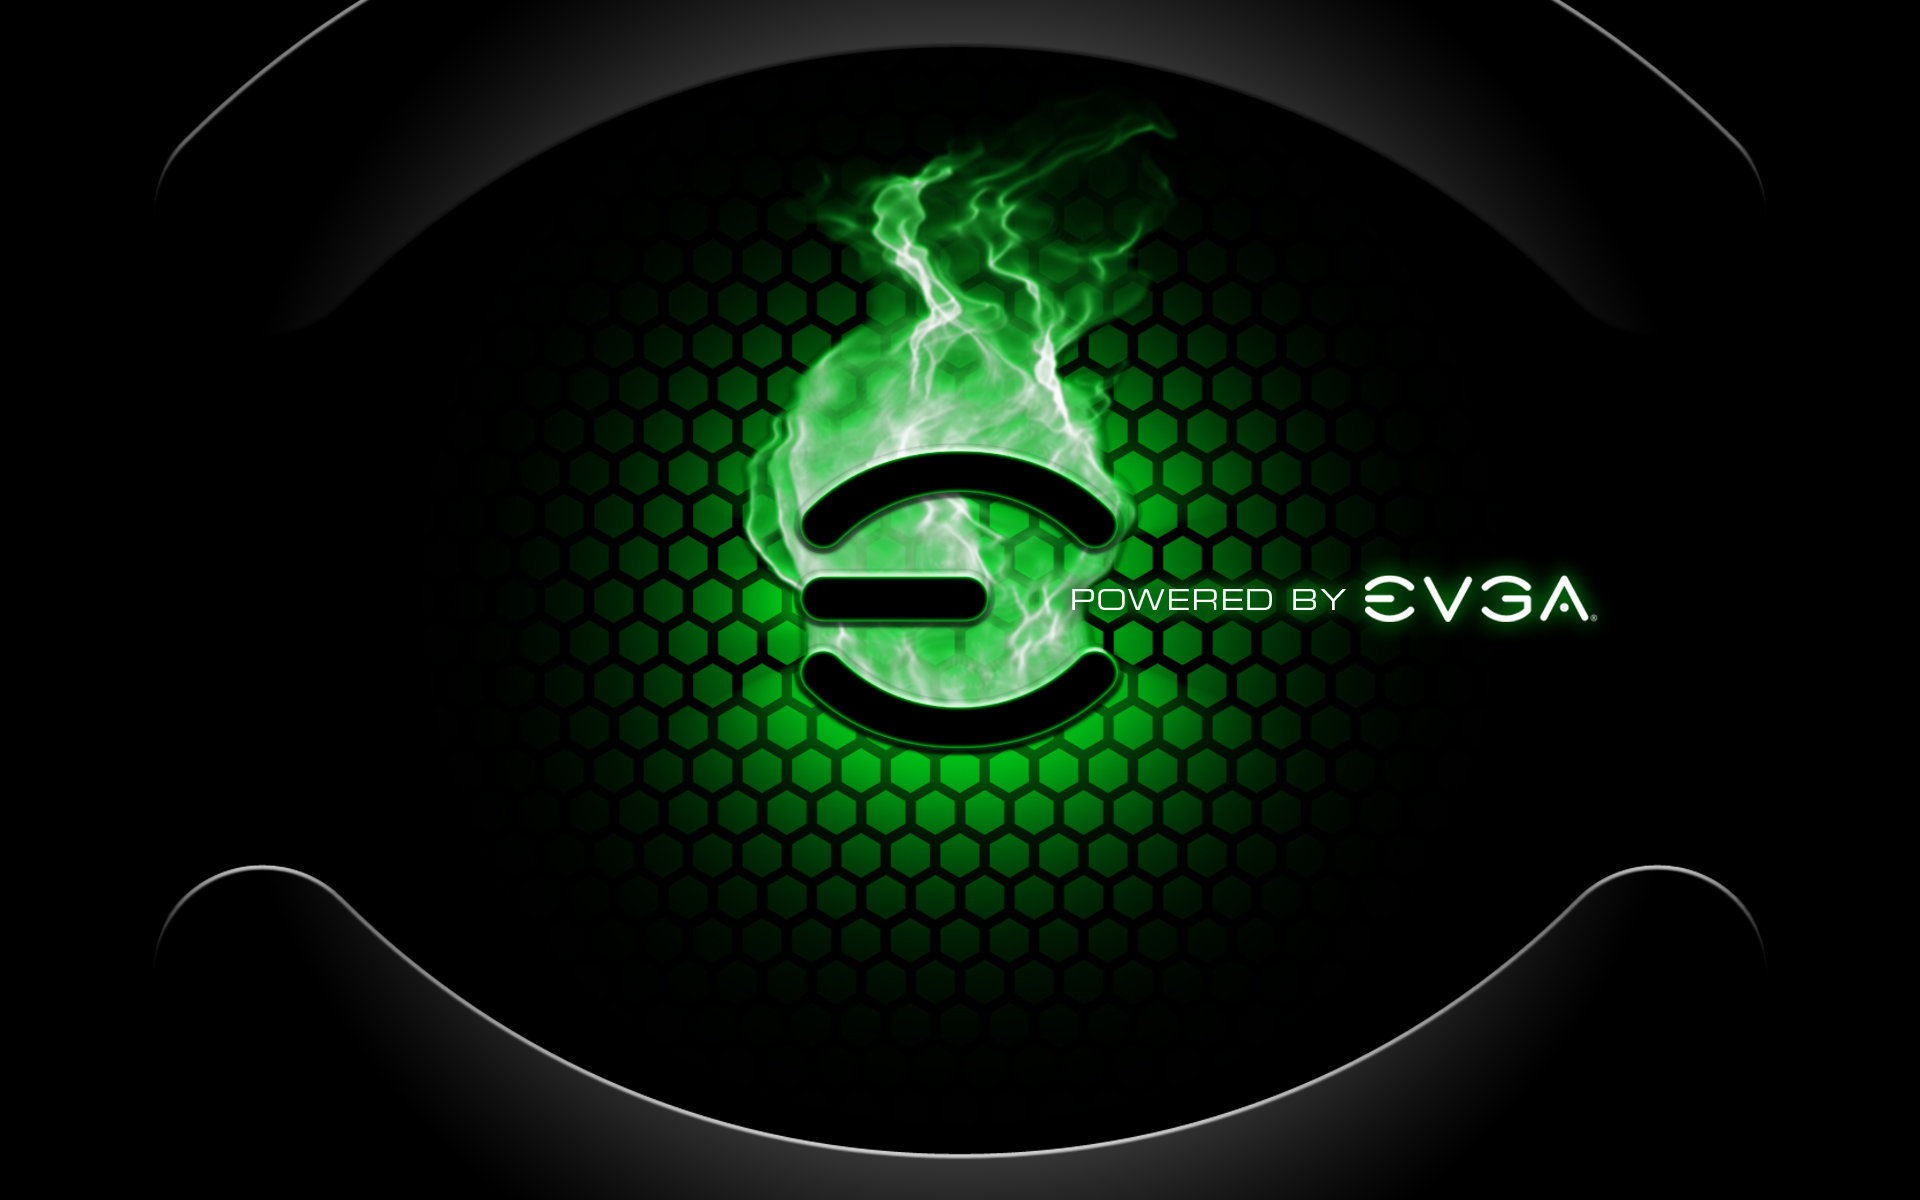 Nvidia Wallpaper Hd Wallpapersafari Sticker Logo Geforce Gt Green Optimus Gtx Images Pictures Becuo 1920x1200